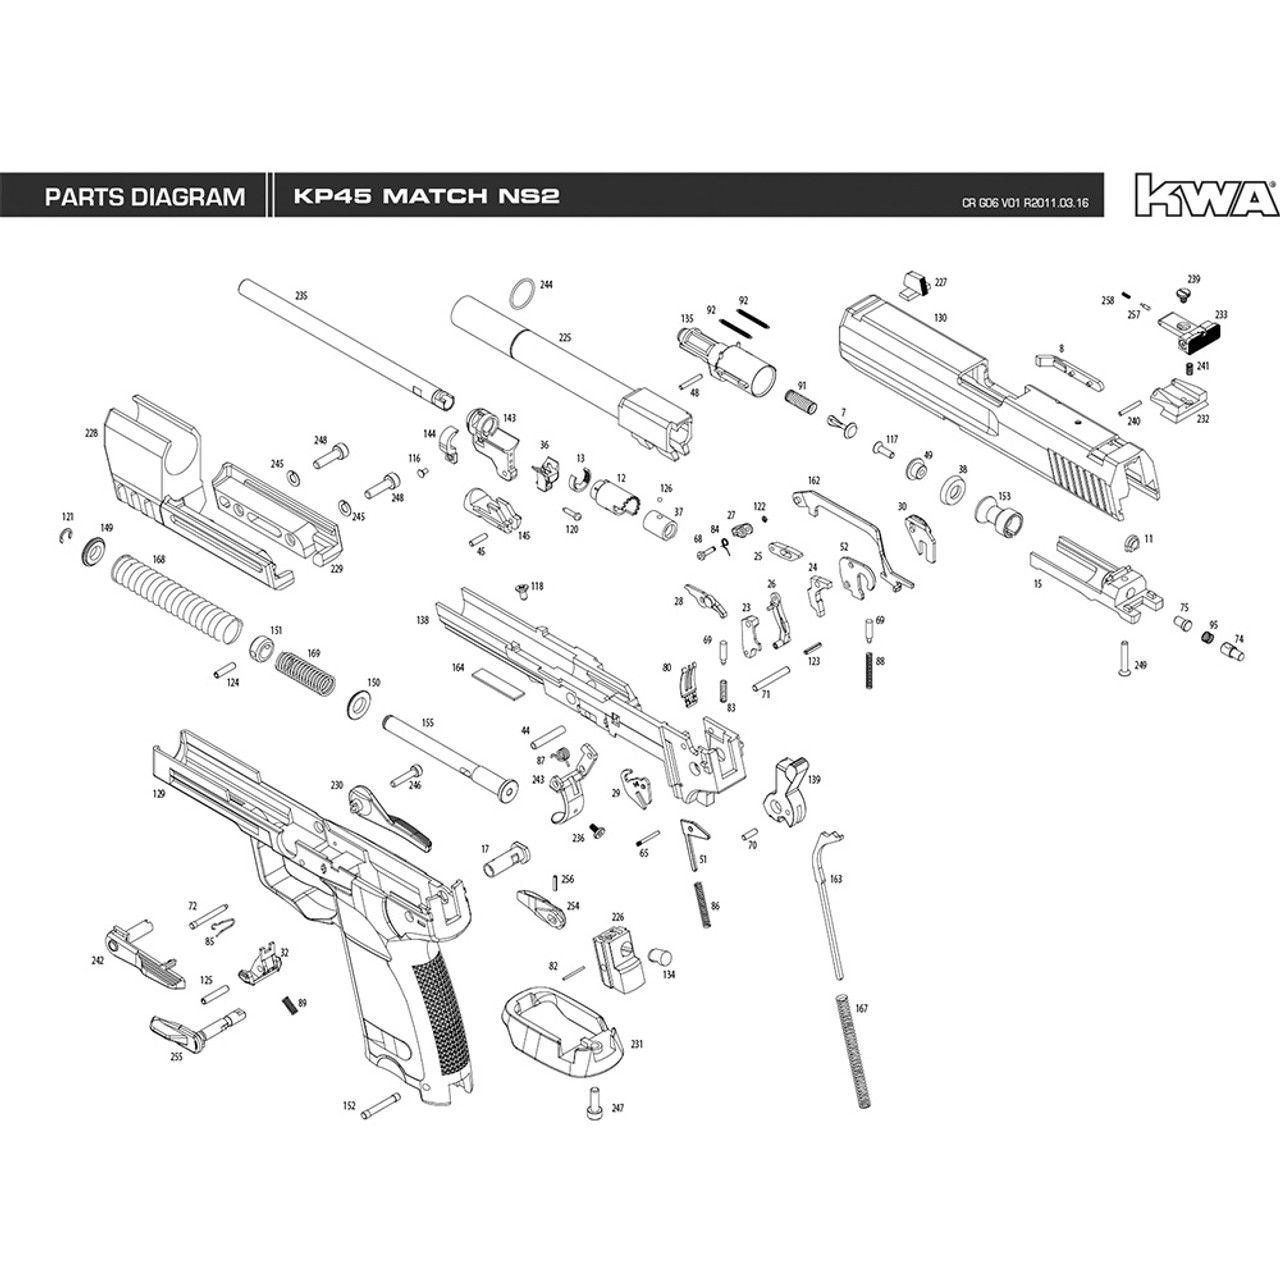 Manow06201101 Ns2 Name Airbag Schematic